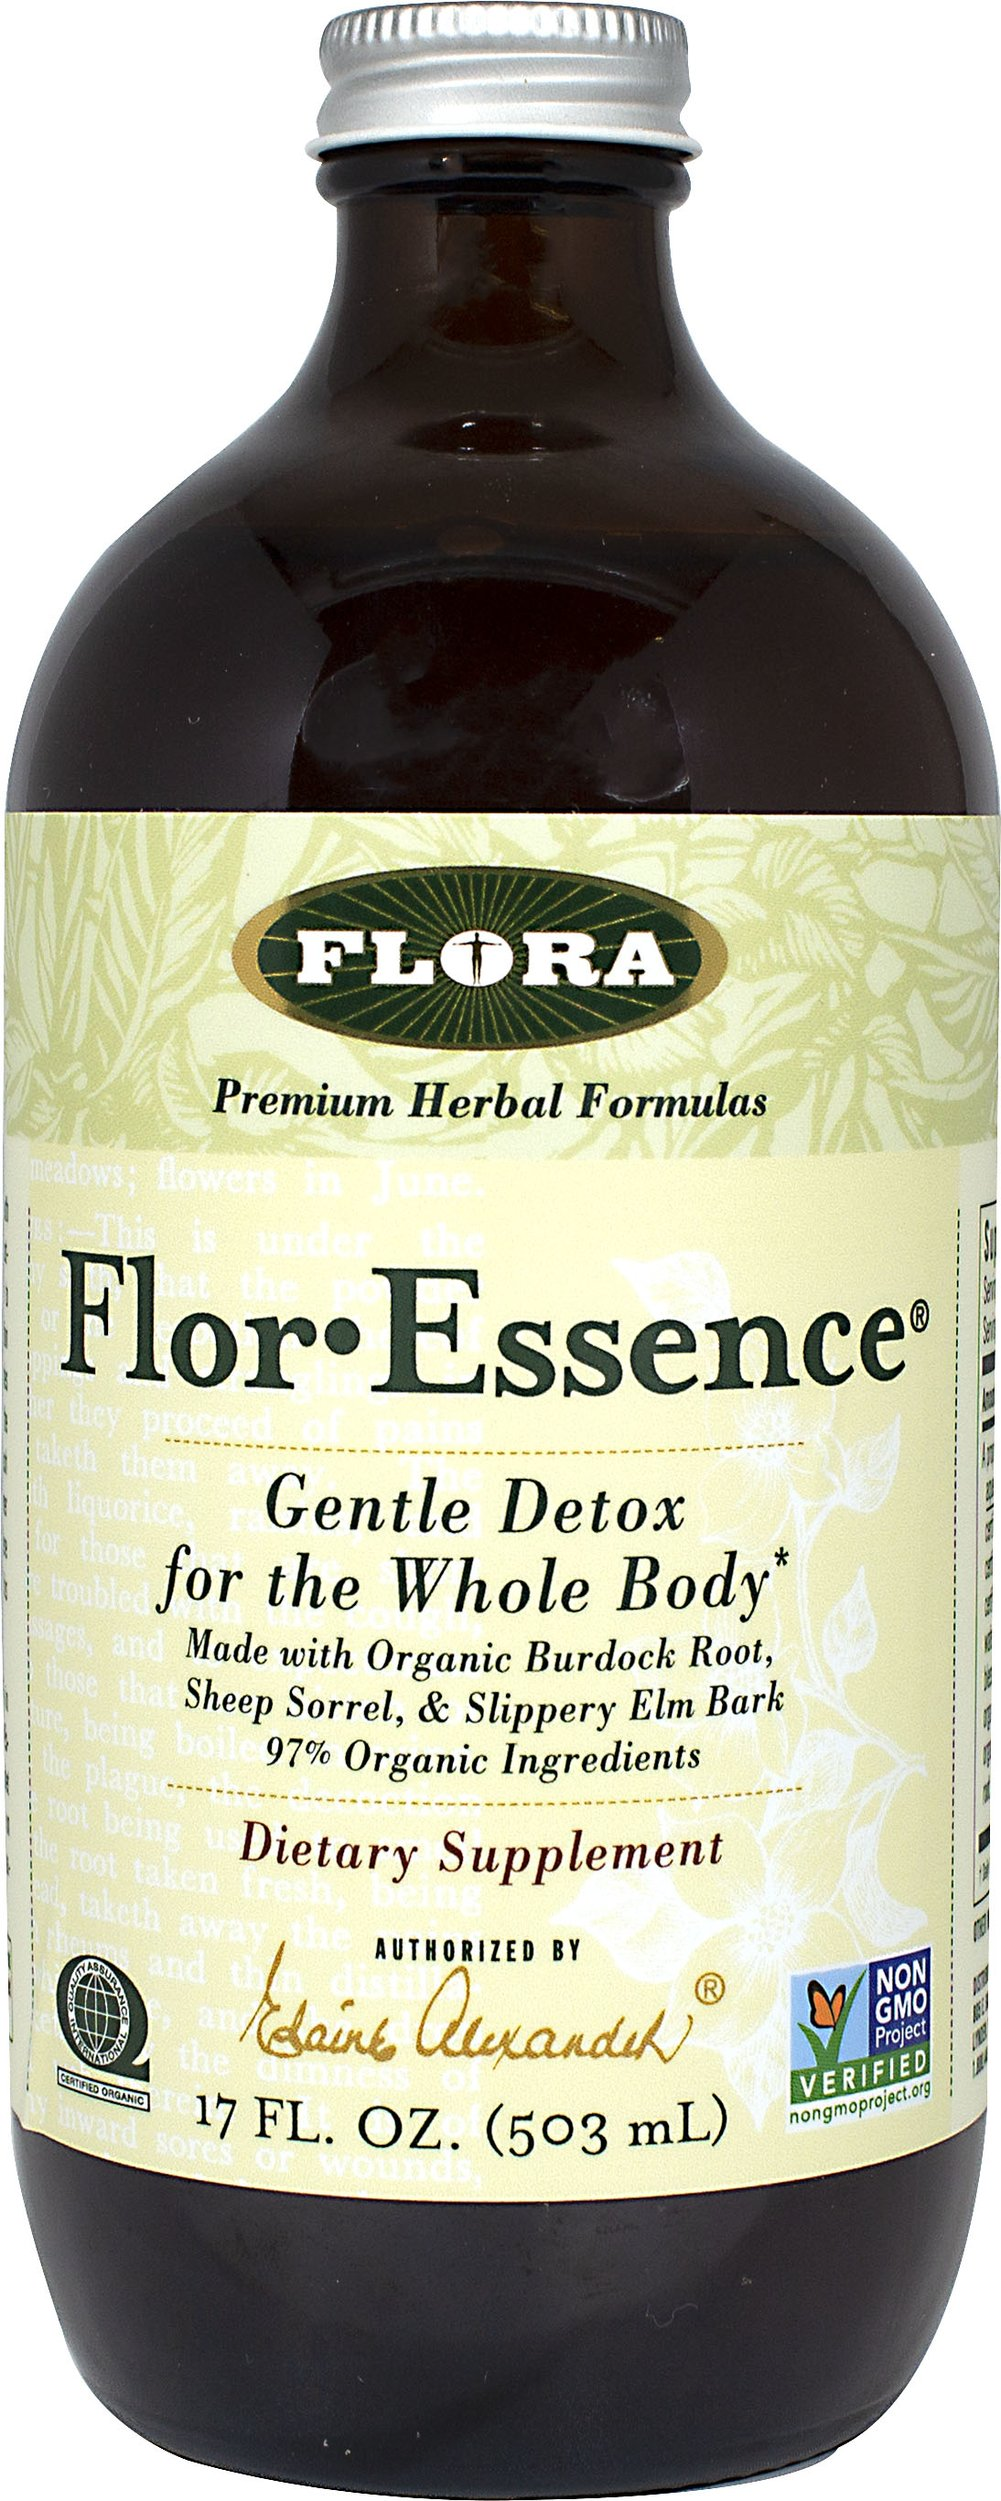 Flor-Essence Liquid <p><strong>From the Manufacturer's Label: </strong></p><p>Flor-Essence is a purification tea that supports the whole body in it's elimination process. The traditional herbal blend is designed to work synergistically as an internal cleanser.</p> 17 fl oz Liquid  $29.99